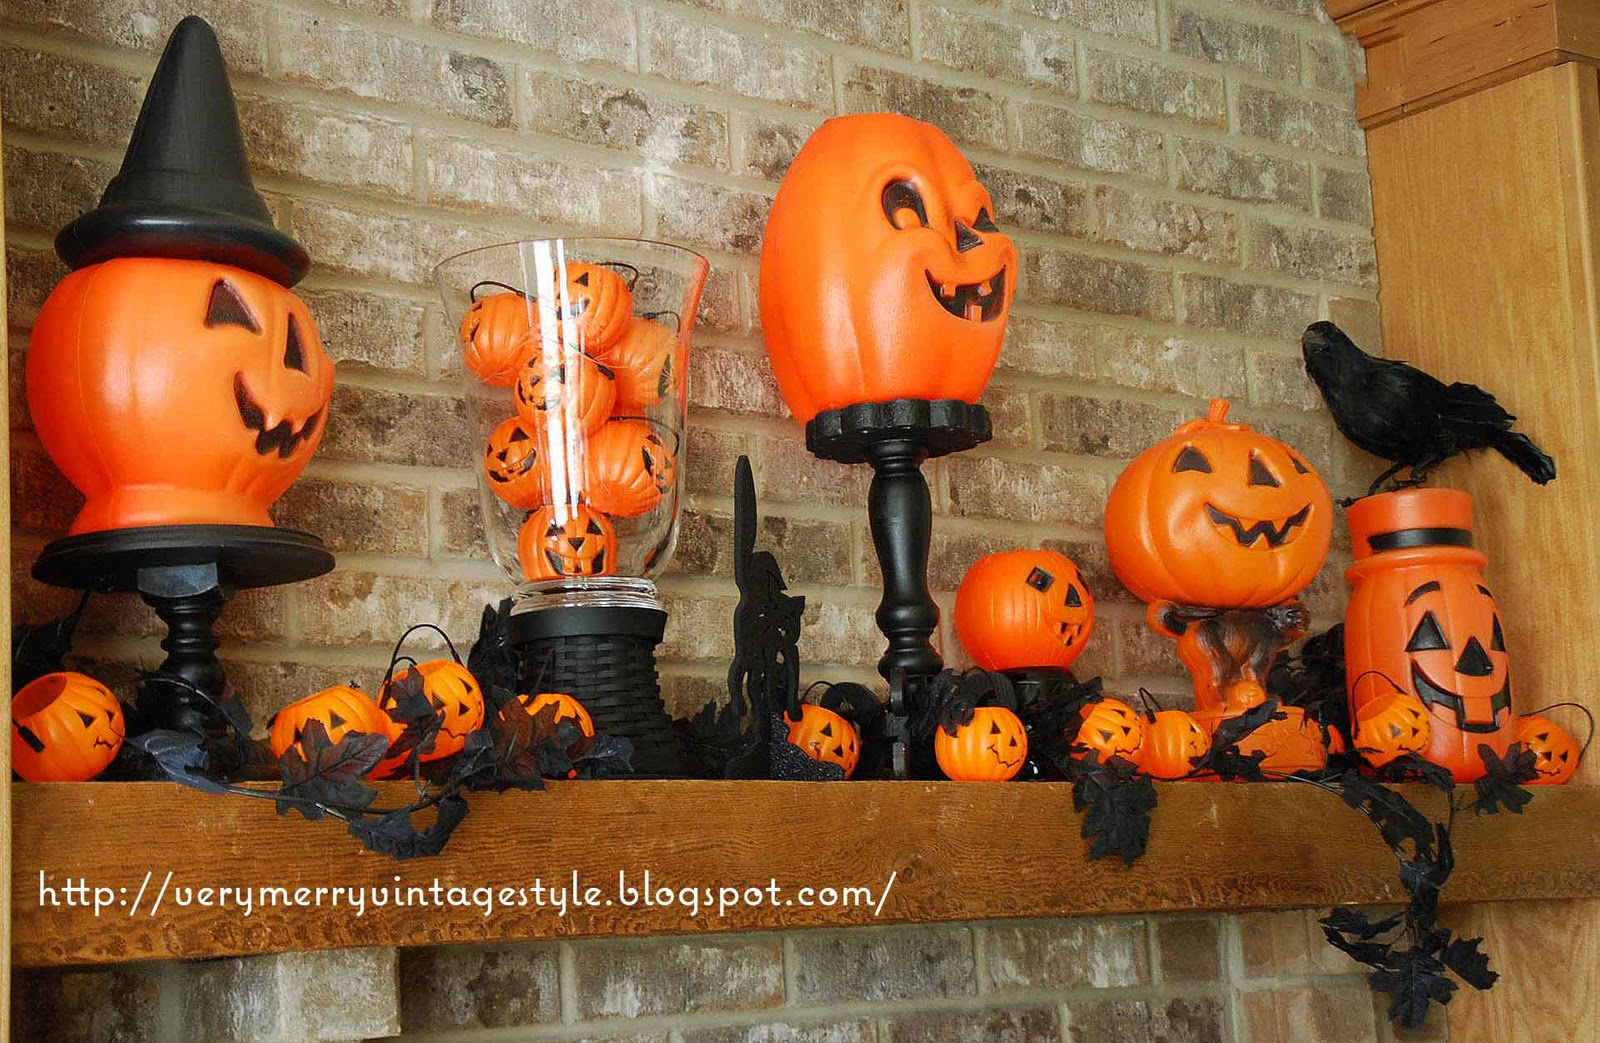 very merry vintage syle cute spooky vintage halloween mantel decorations. Black Bedroom Furniture Sets. Home Design Ideas